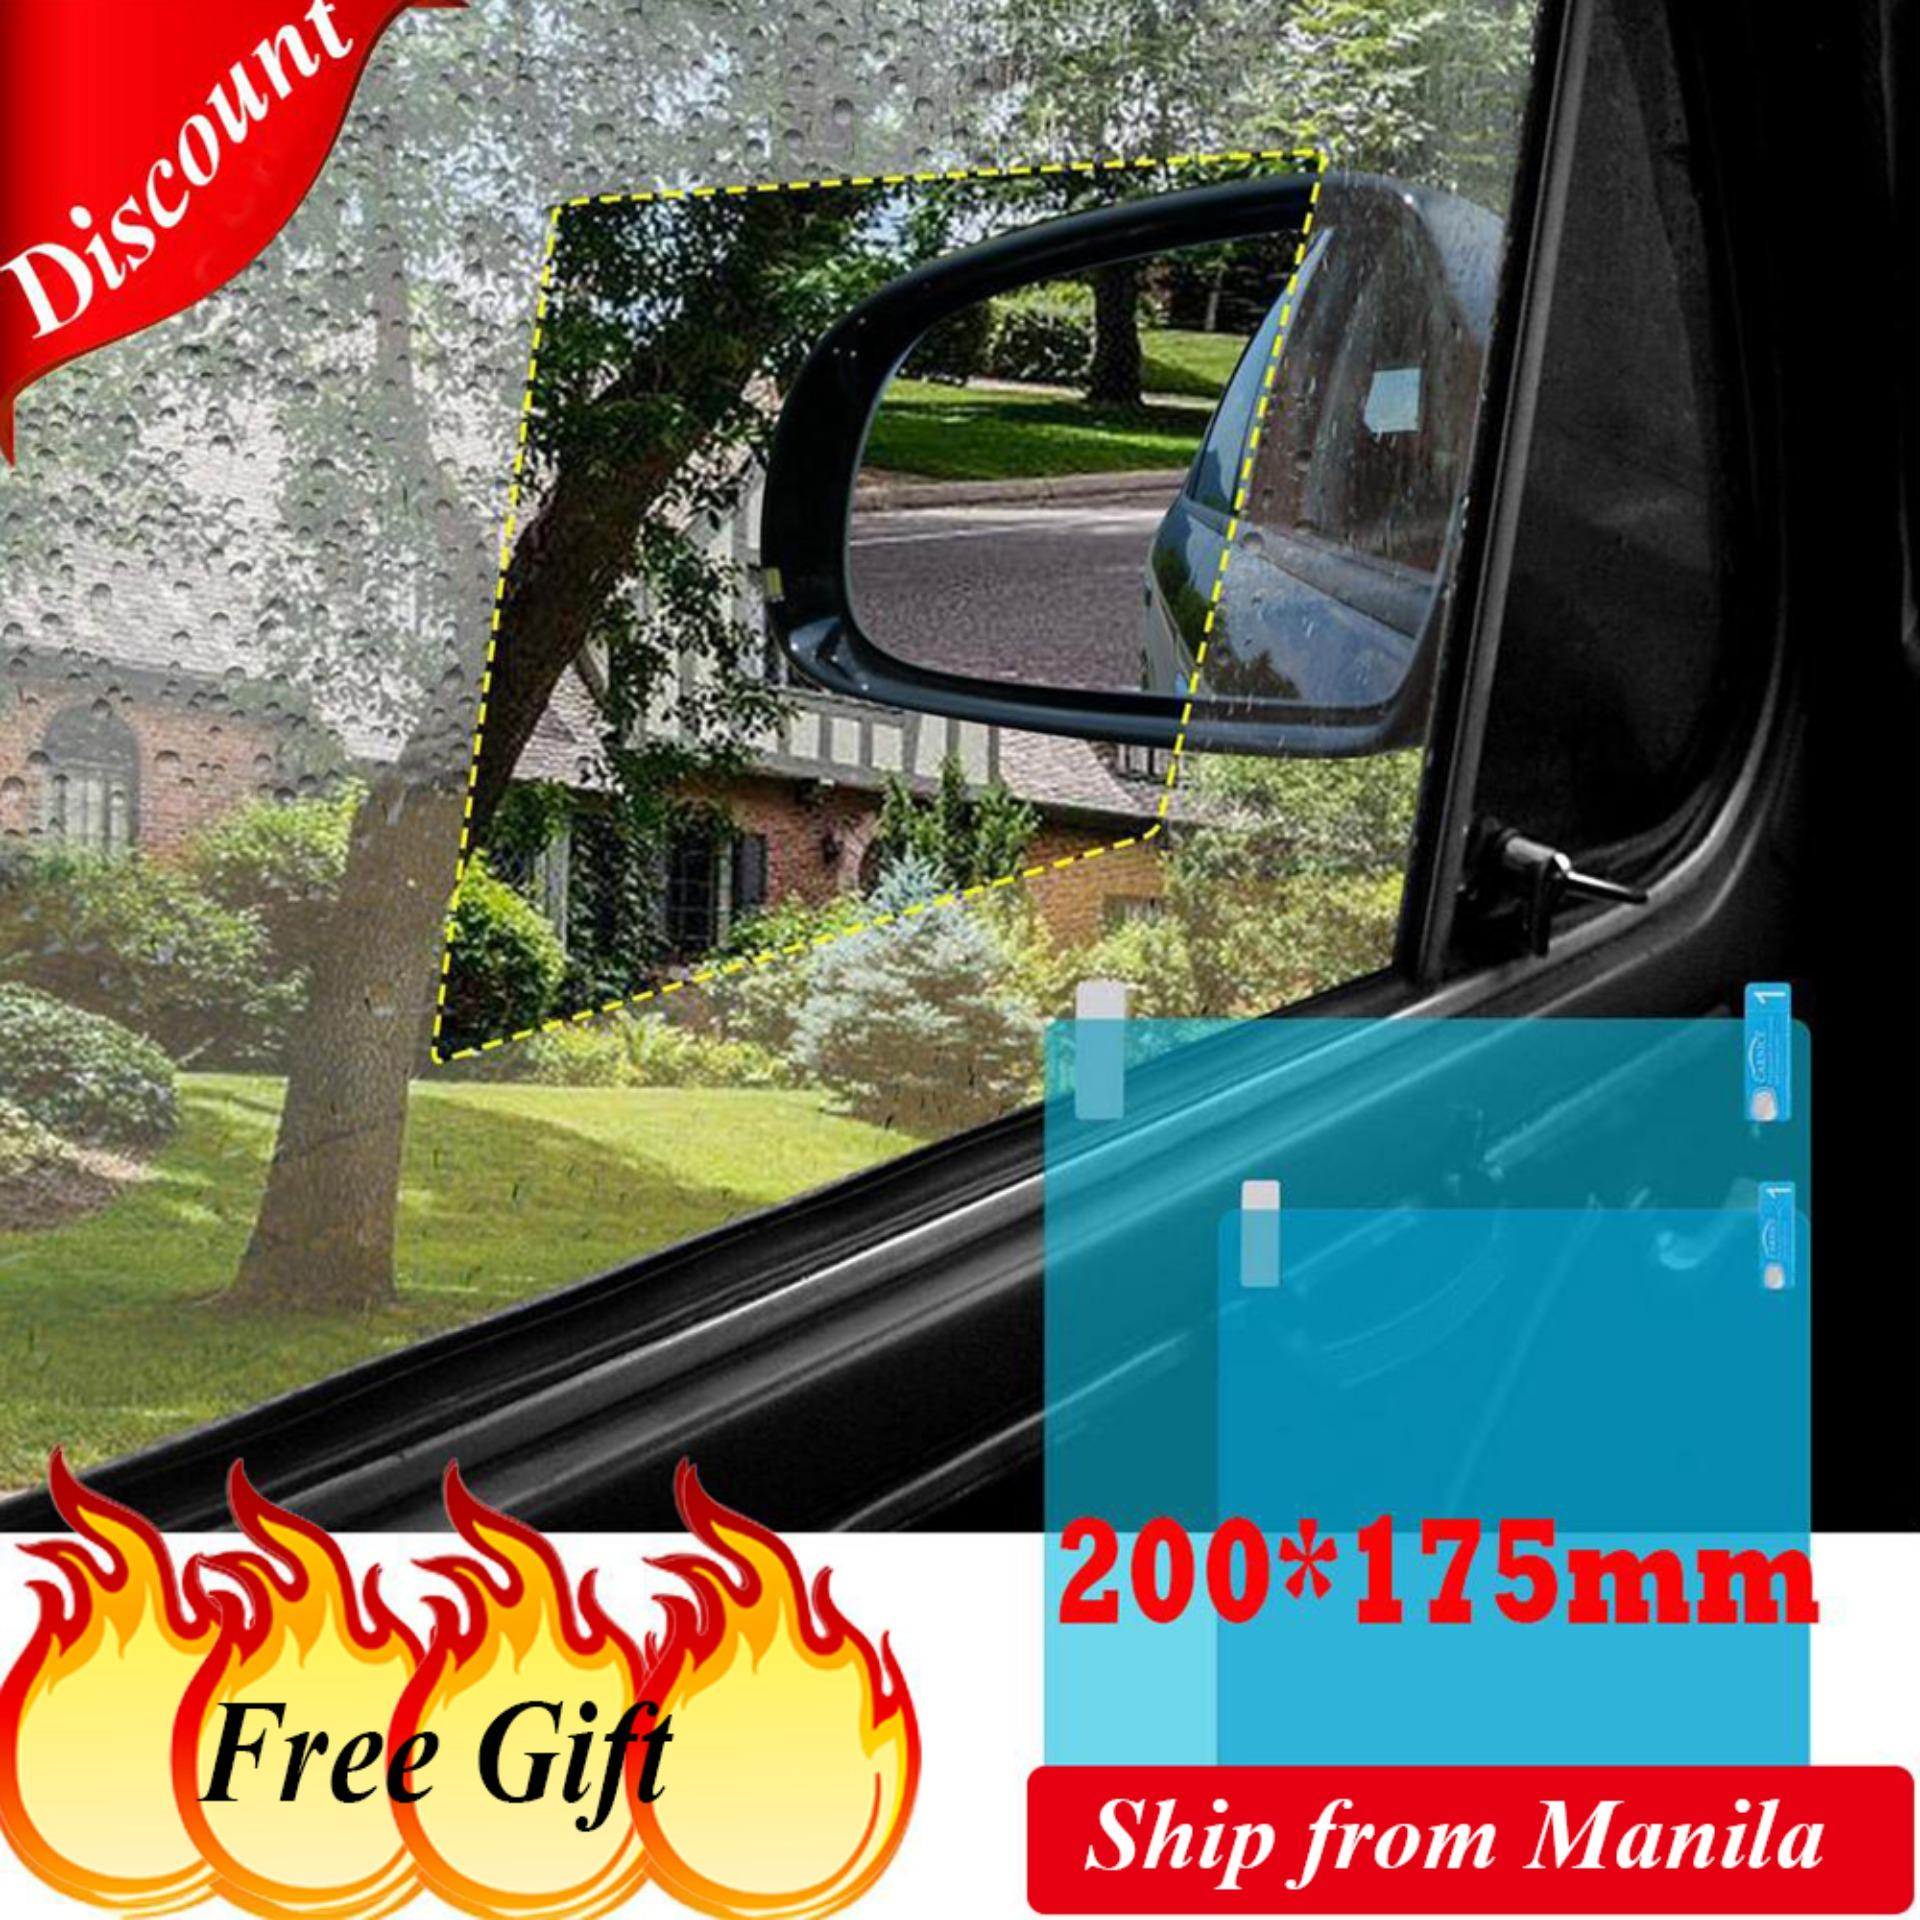 (200*175mm)2 Pieces/Set Car Side Window Protective Film Anti Fog Membrane  Anti-glare Waterproof Rainproof Auto Mirror Window Clear Film Car Sticker